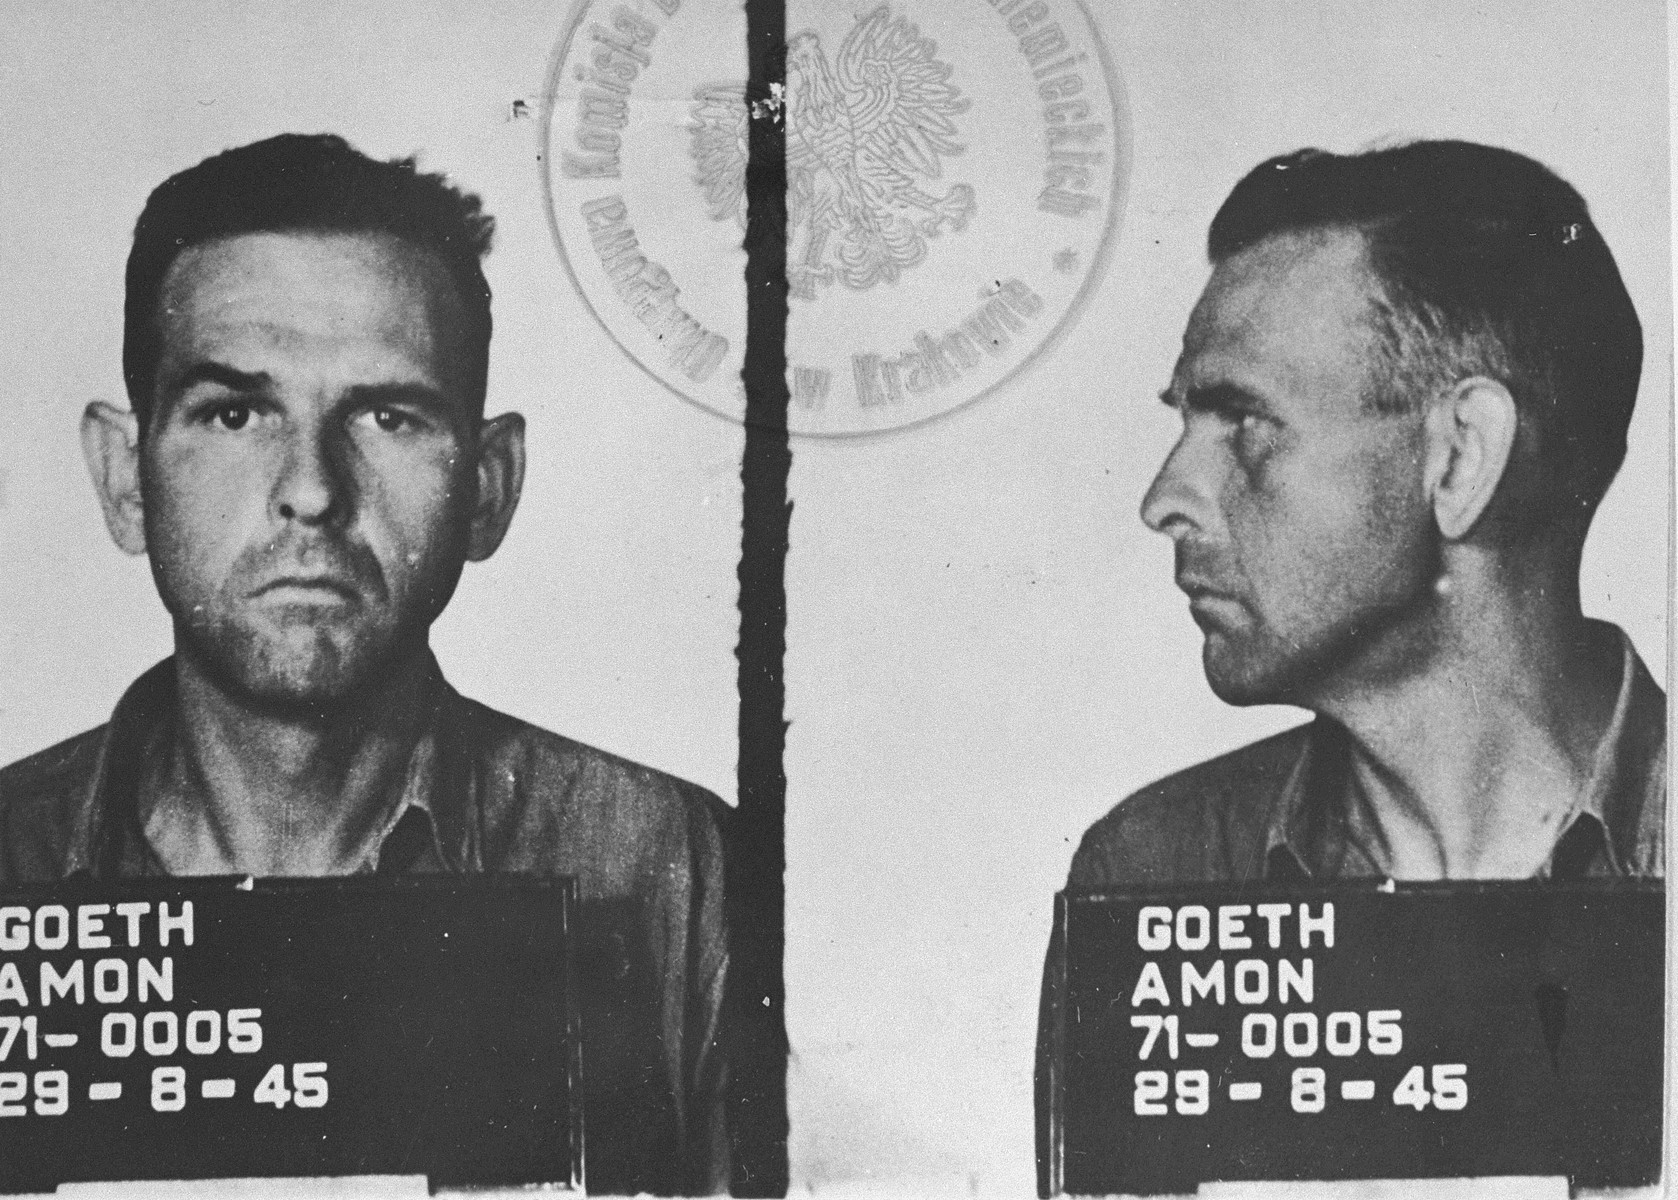 Mug shot of Amon Goeth, taken upon his capture.